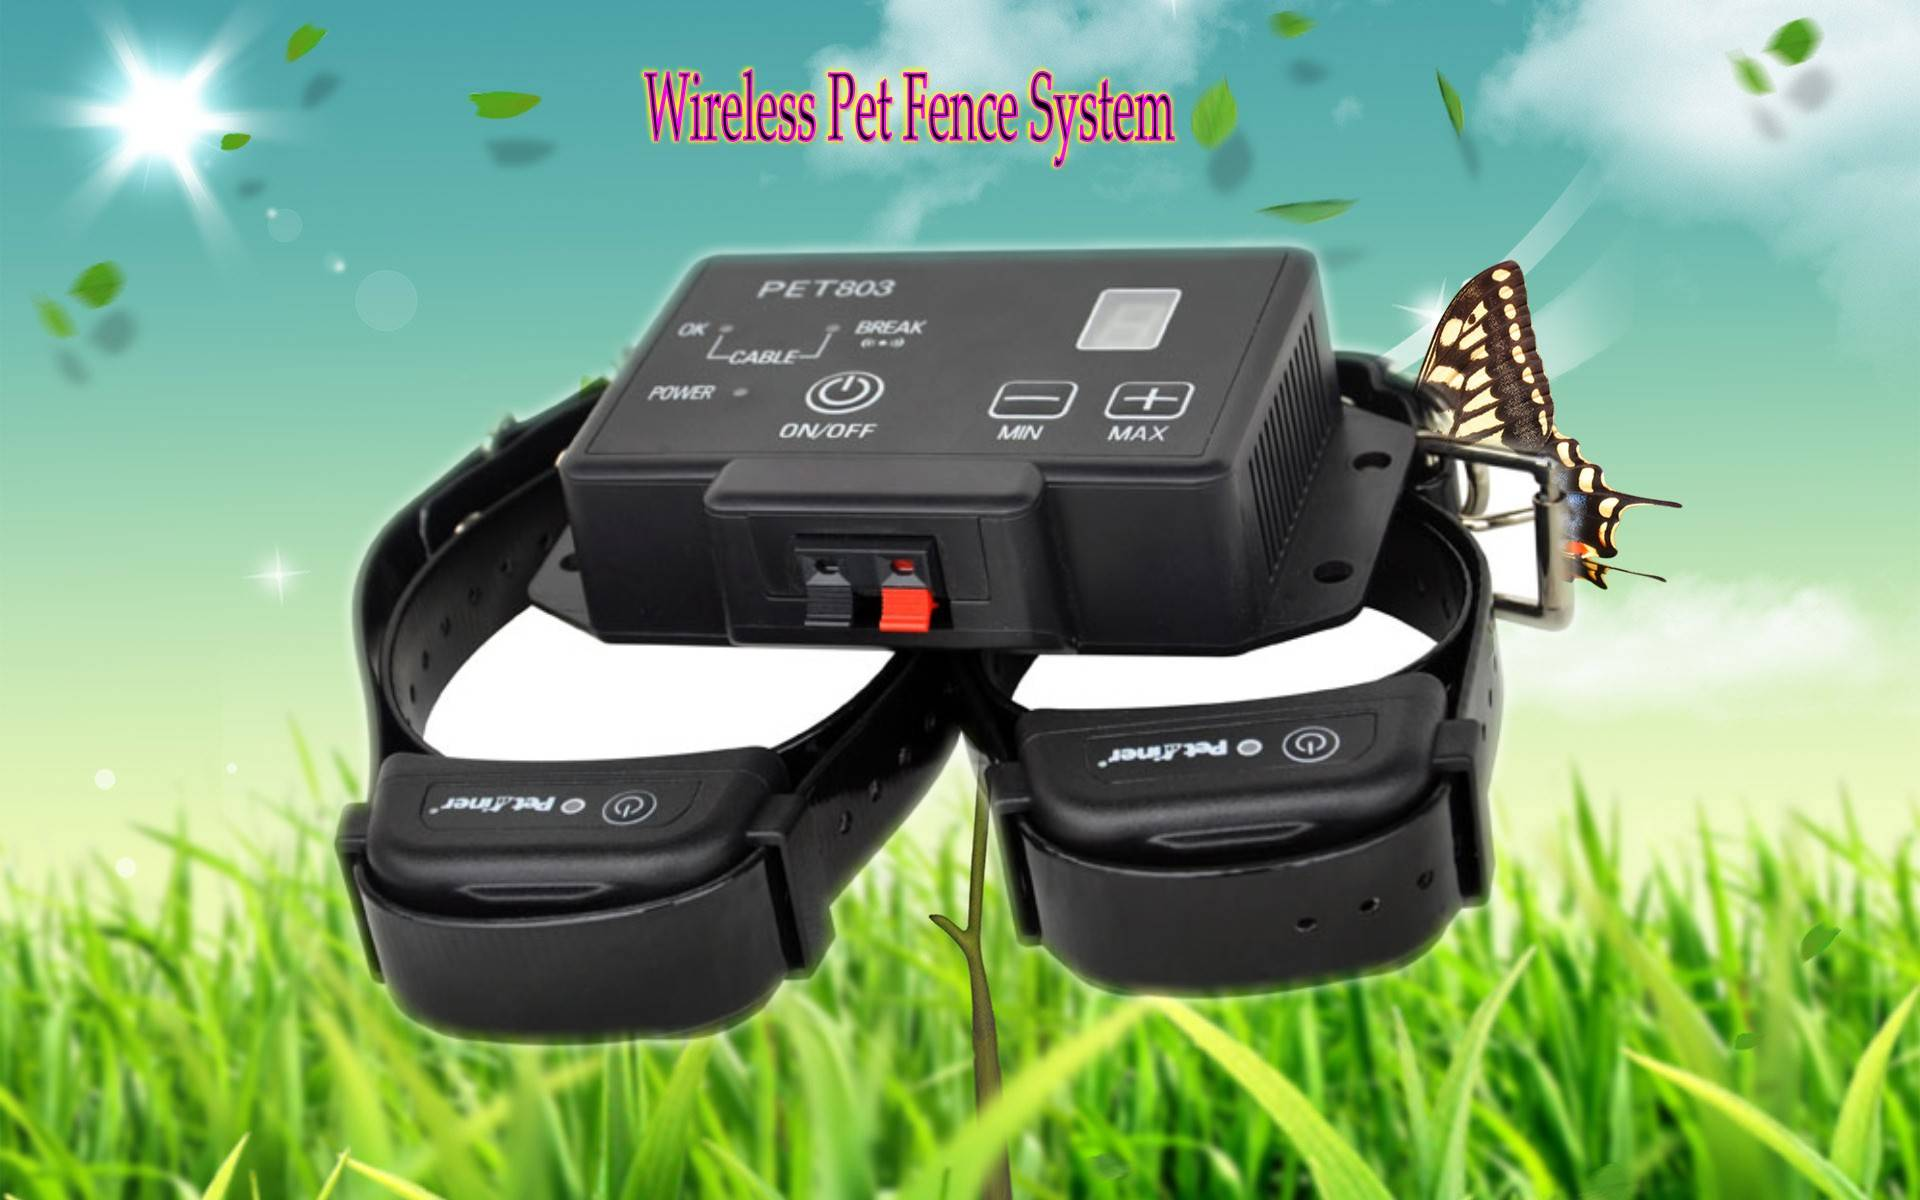 Complete Electronic In-Ground Pet Dog Training Boundary Perimeter Fencing System